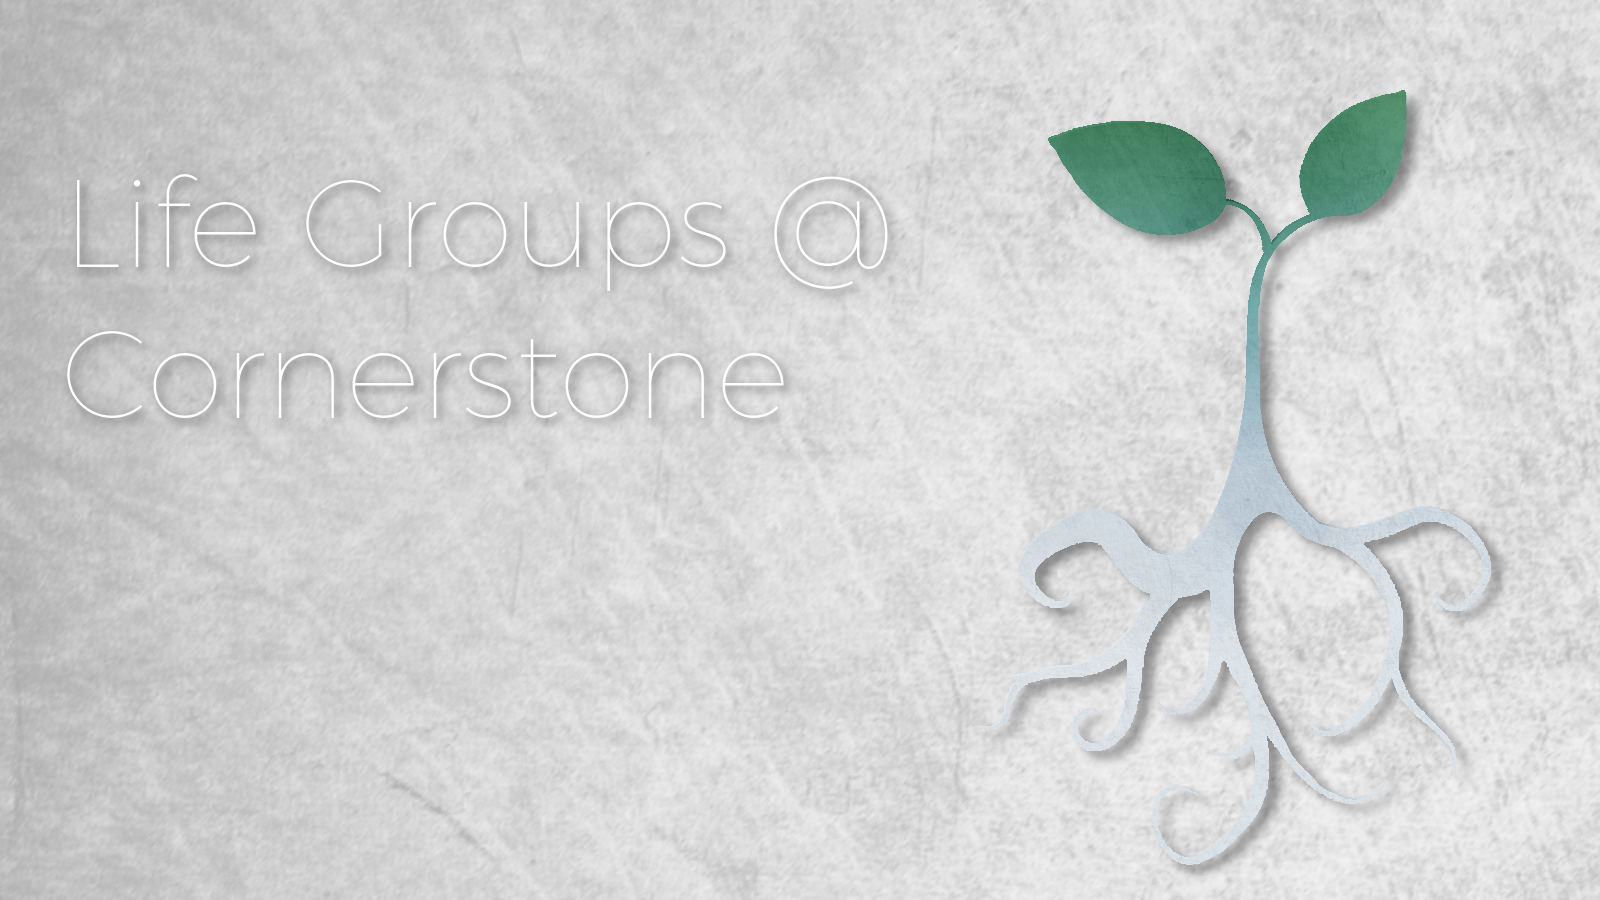 """Life Groups  At Cornerstone, we believe that """"life growth happens best in Life Groups."""" We understand that to grow to become more like Christ (discipleship) happens when we are intentionally connecting with God and each other! Our goal is that 80% of our attenders are actively involved in a Life Group.  Your spiritual growth needs this! Let us know if you are ready to grow closer to Jesus through Life groups!"""